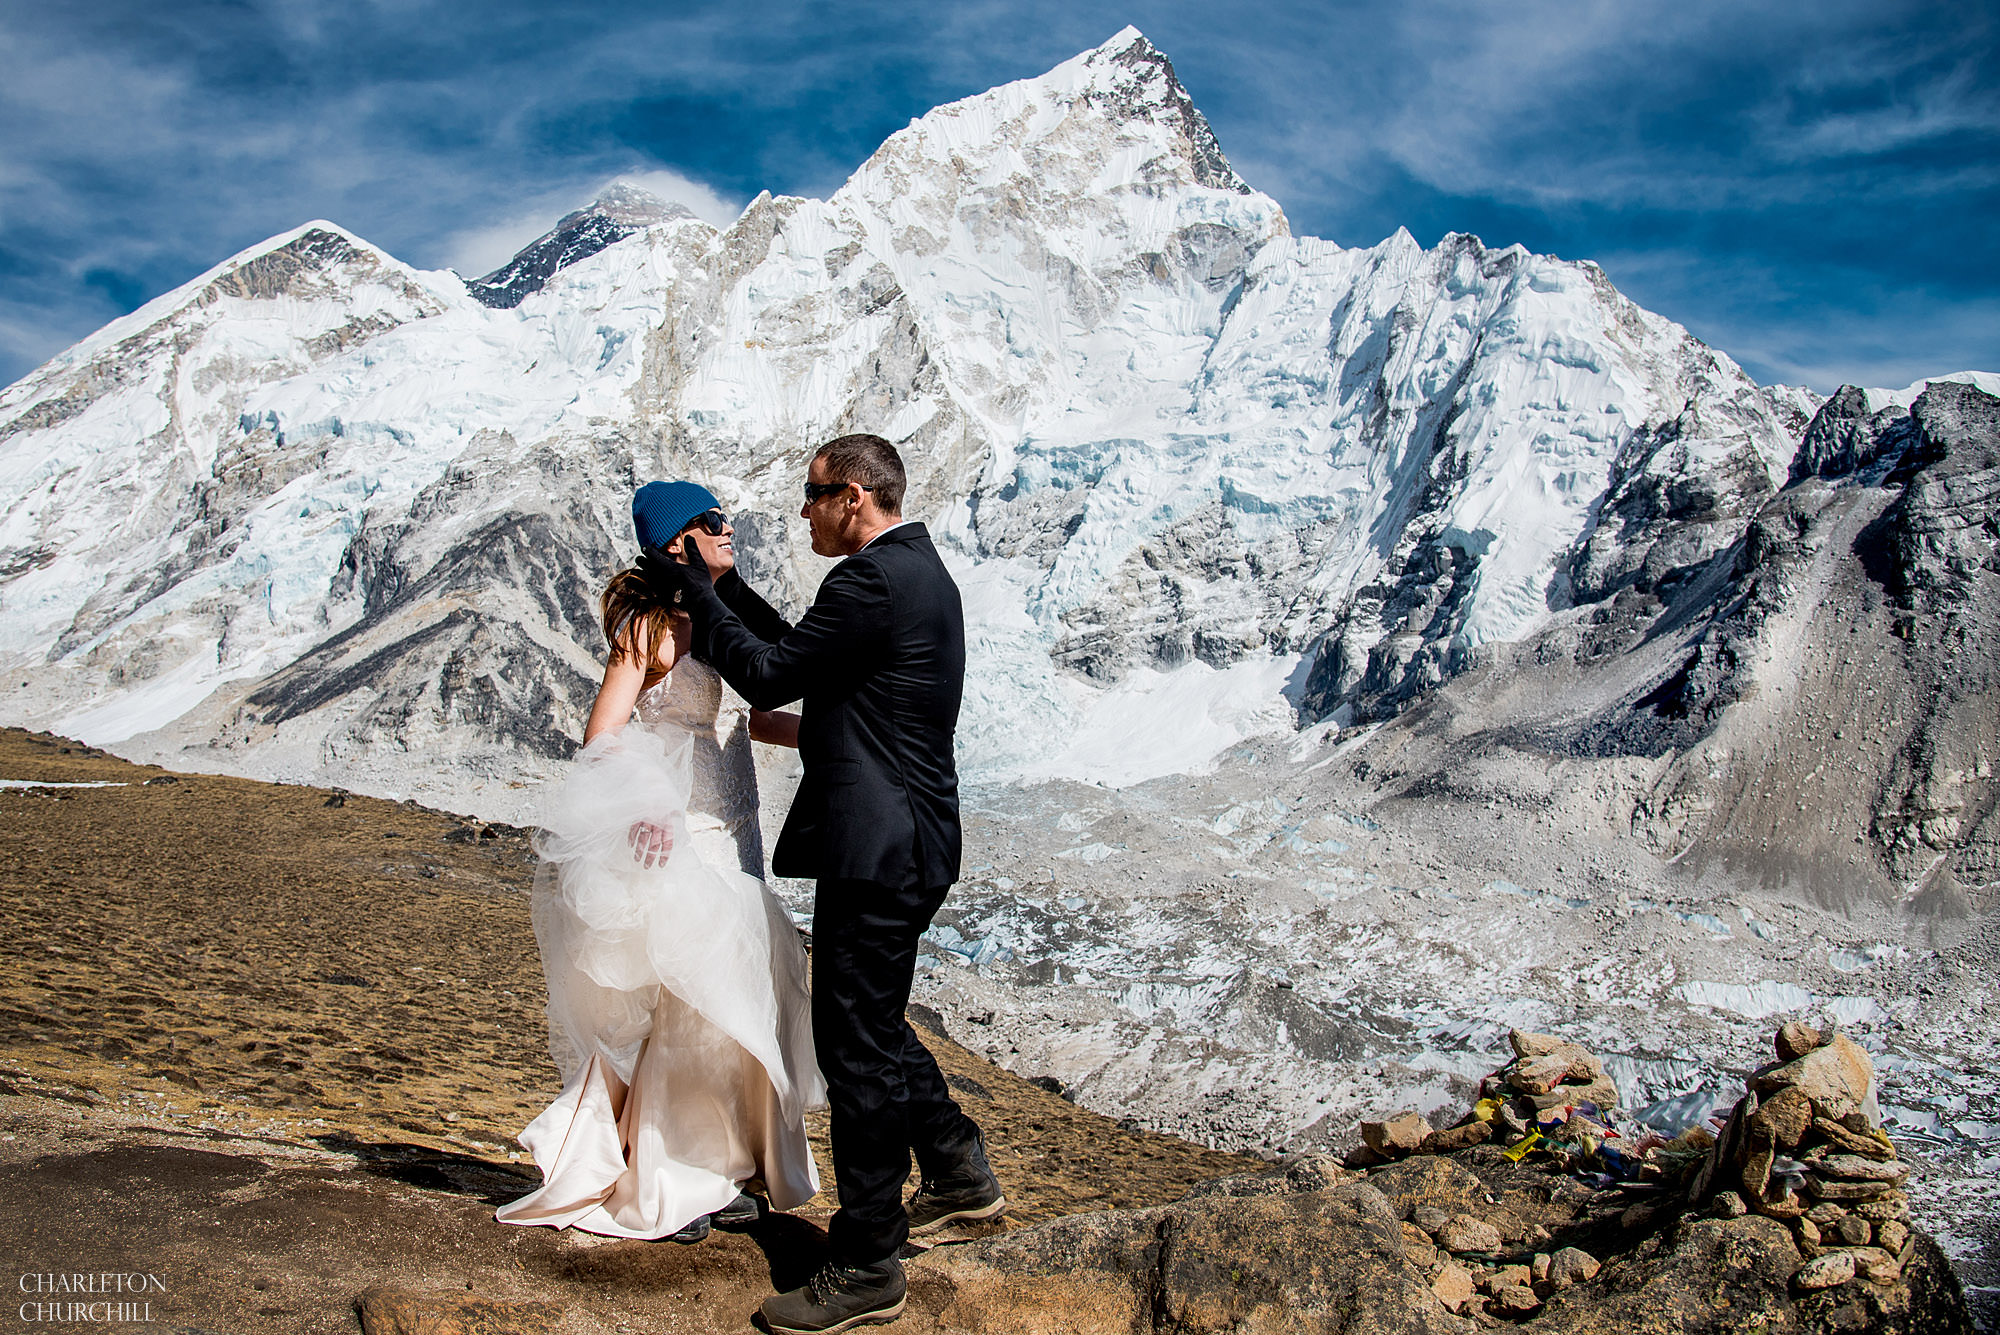 couple marries on Mt. Everest with wedding dress